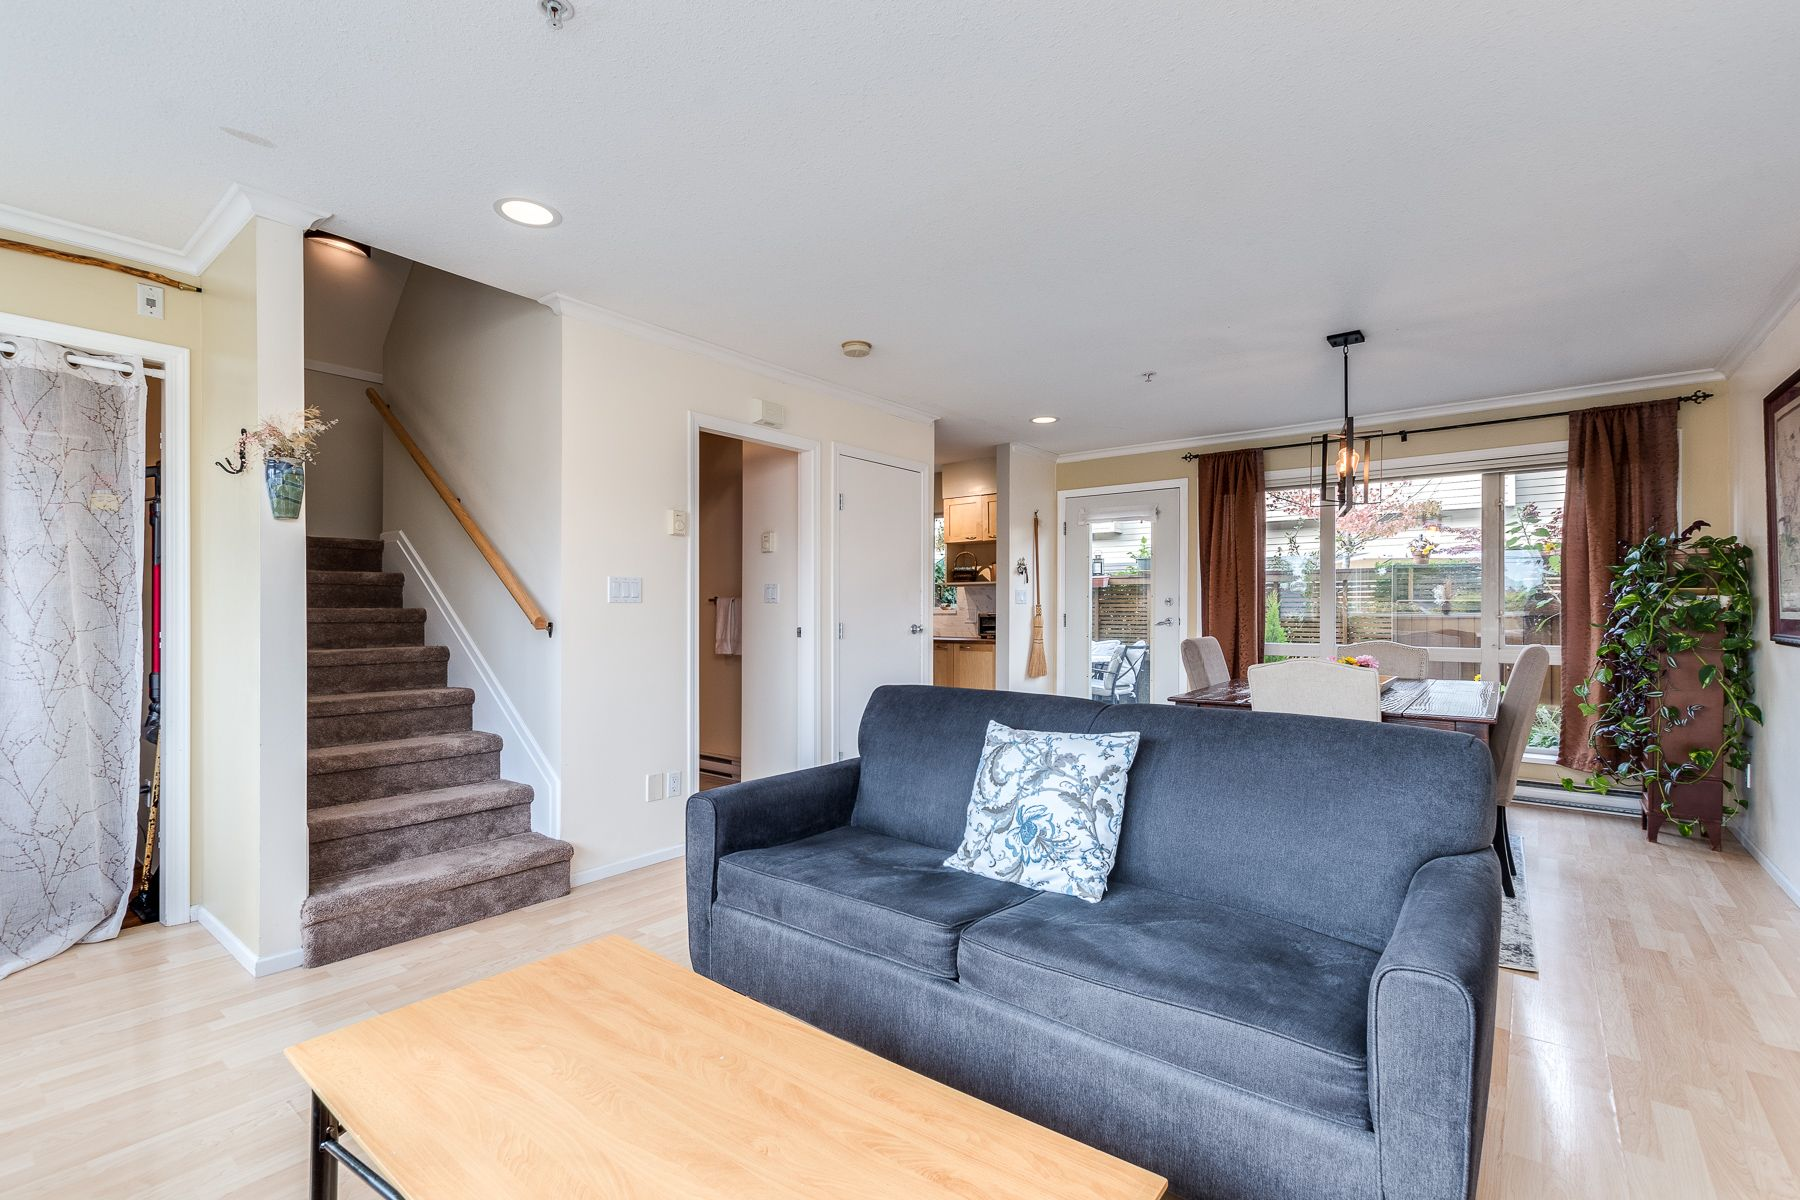 Photo 10: Photos: 7-2389 Charles St in Vancouver: Grandview Woodland Townhouse for sale (Vancouver East)